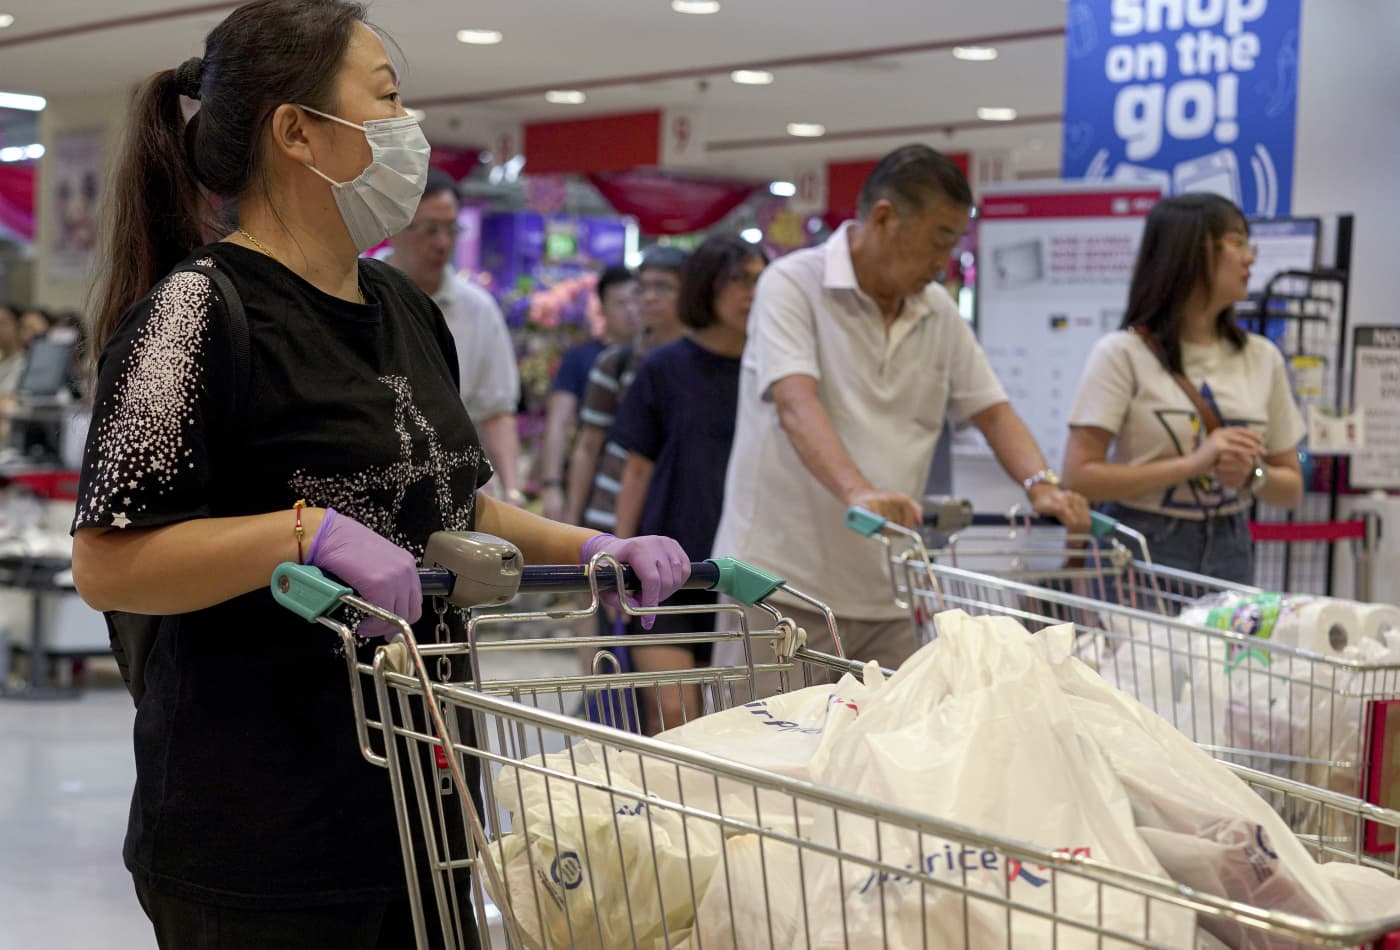 Alibaba-owned Lazada sees 'unprecedented demand' for online grocery in Singapore